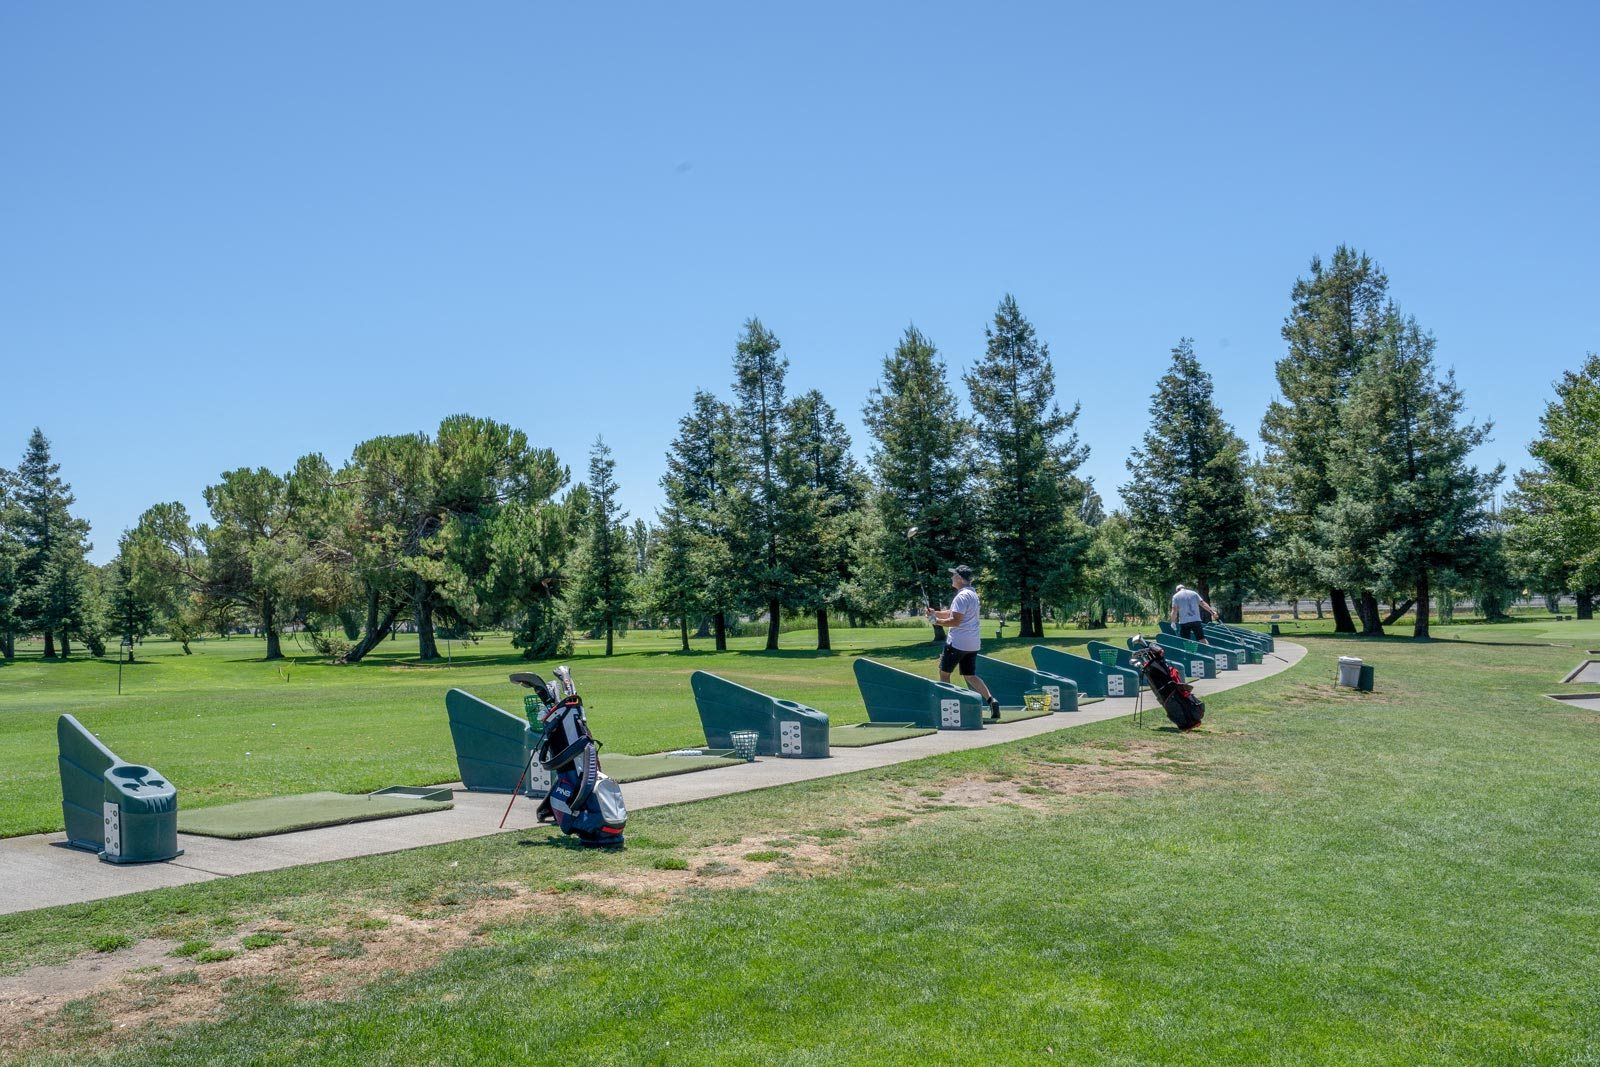 Enjoy All The NorCal Outdoor Activities at Windsor at Redwood Creek, Rohnert Park, CA